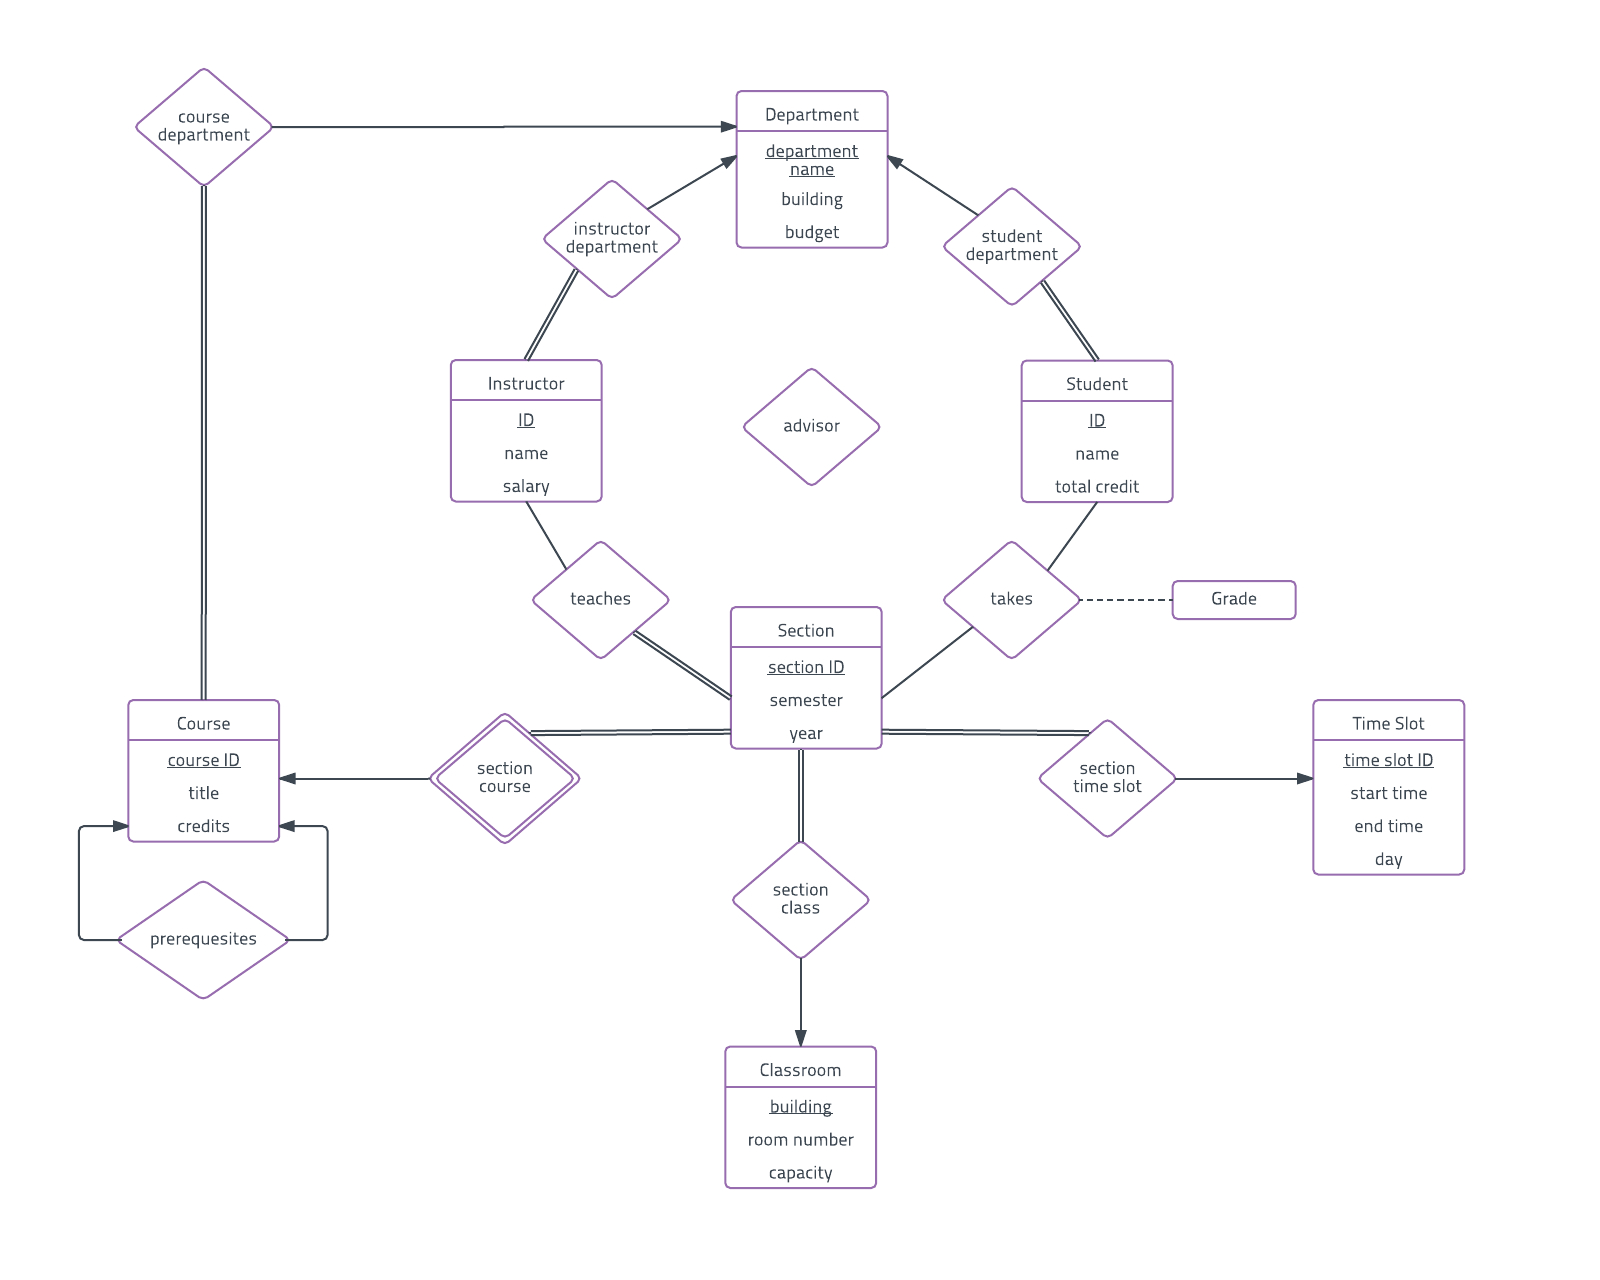 Er Diagram Examples And Templates | Lucidchart pertaining to Er Diagram Nedir